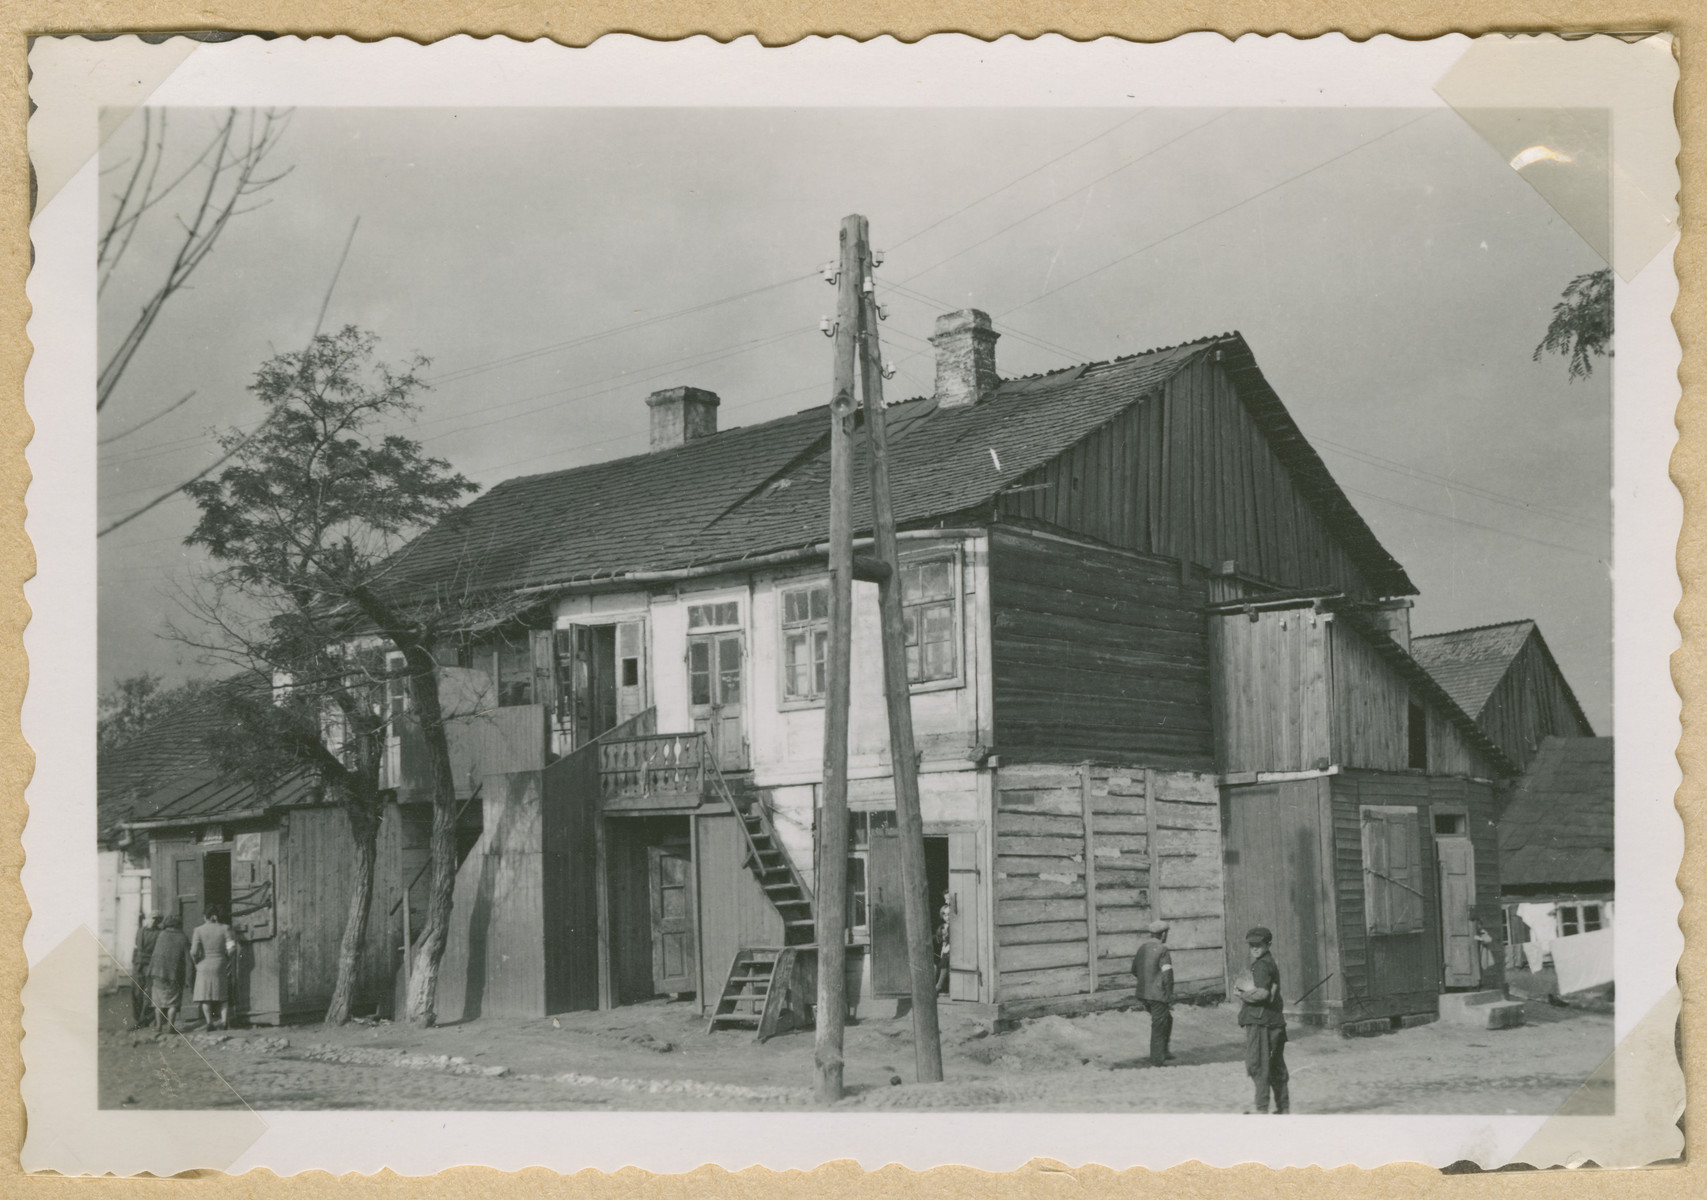 Exterior view of a house in Irena.